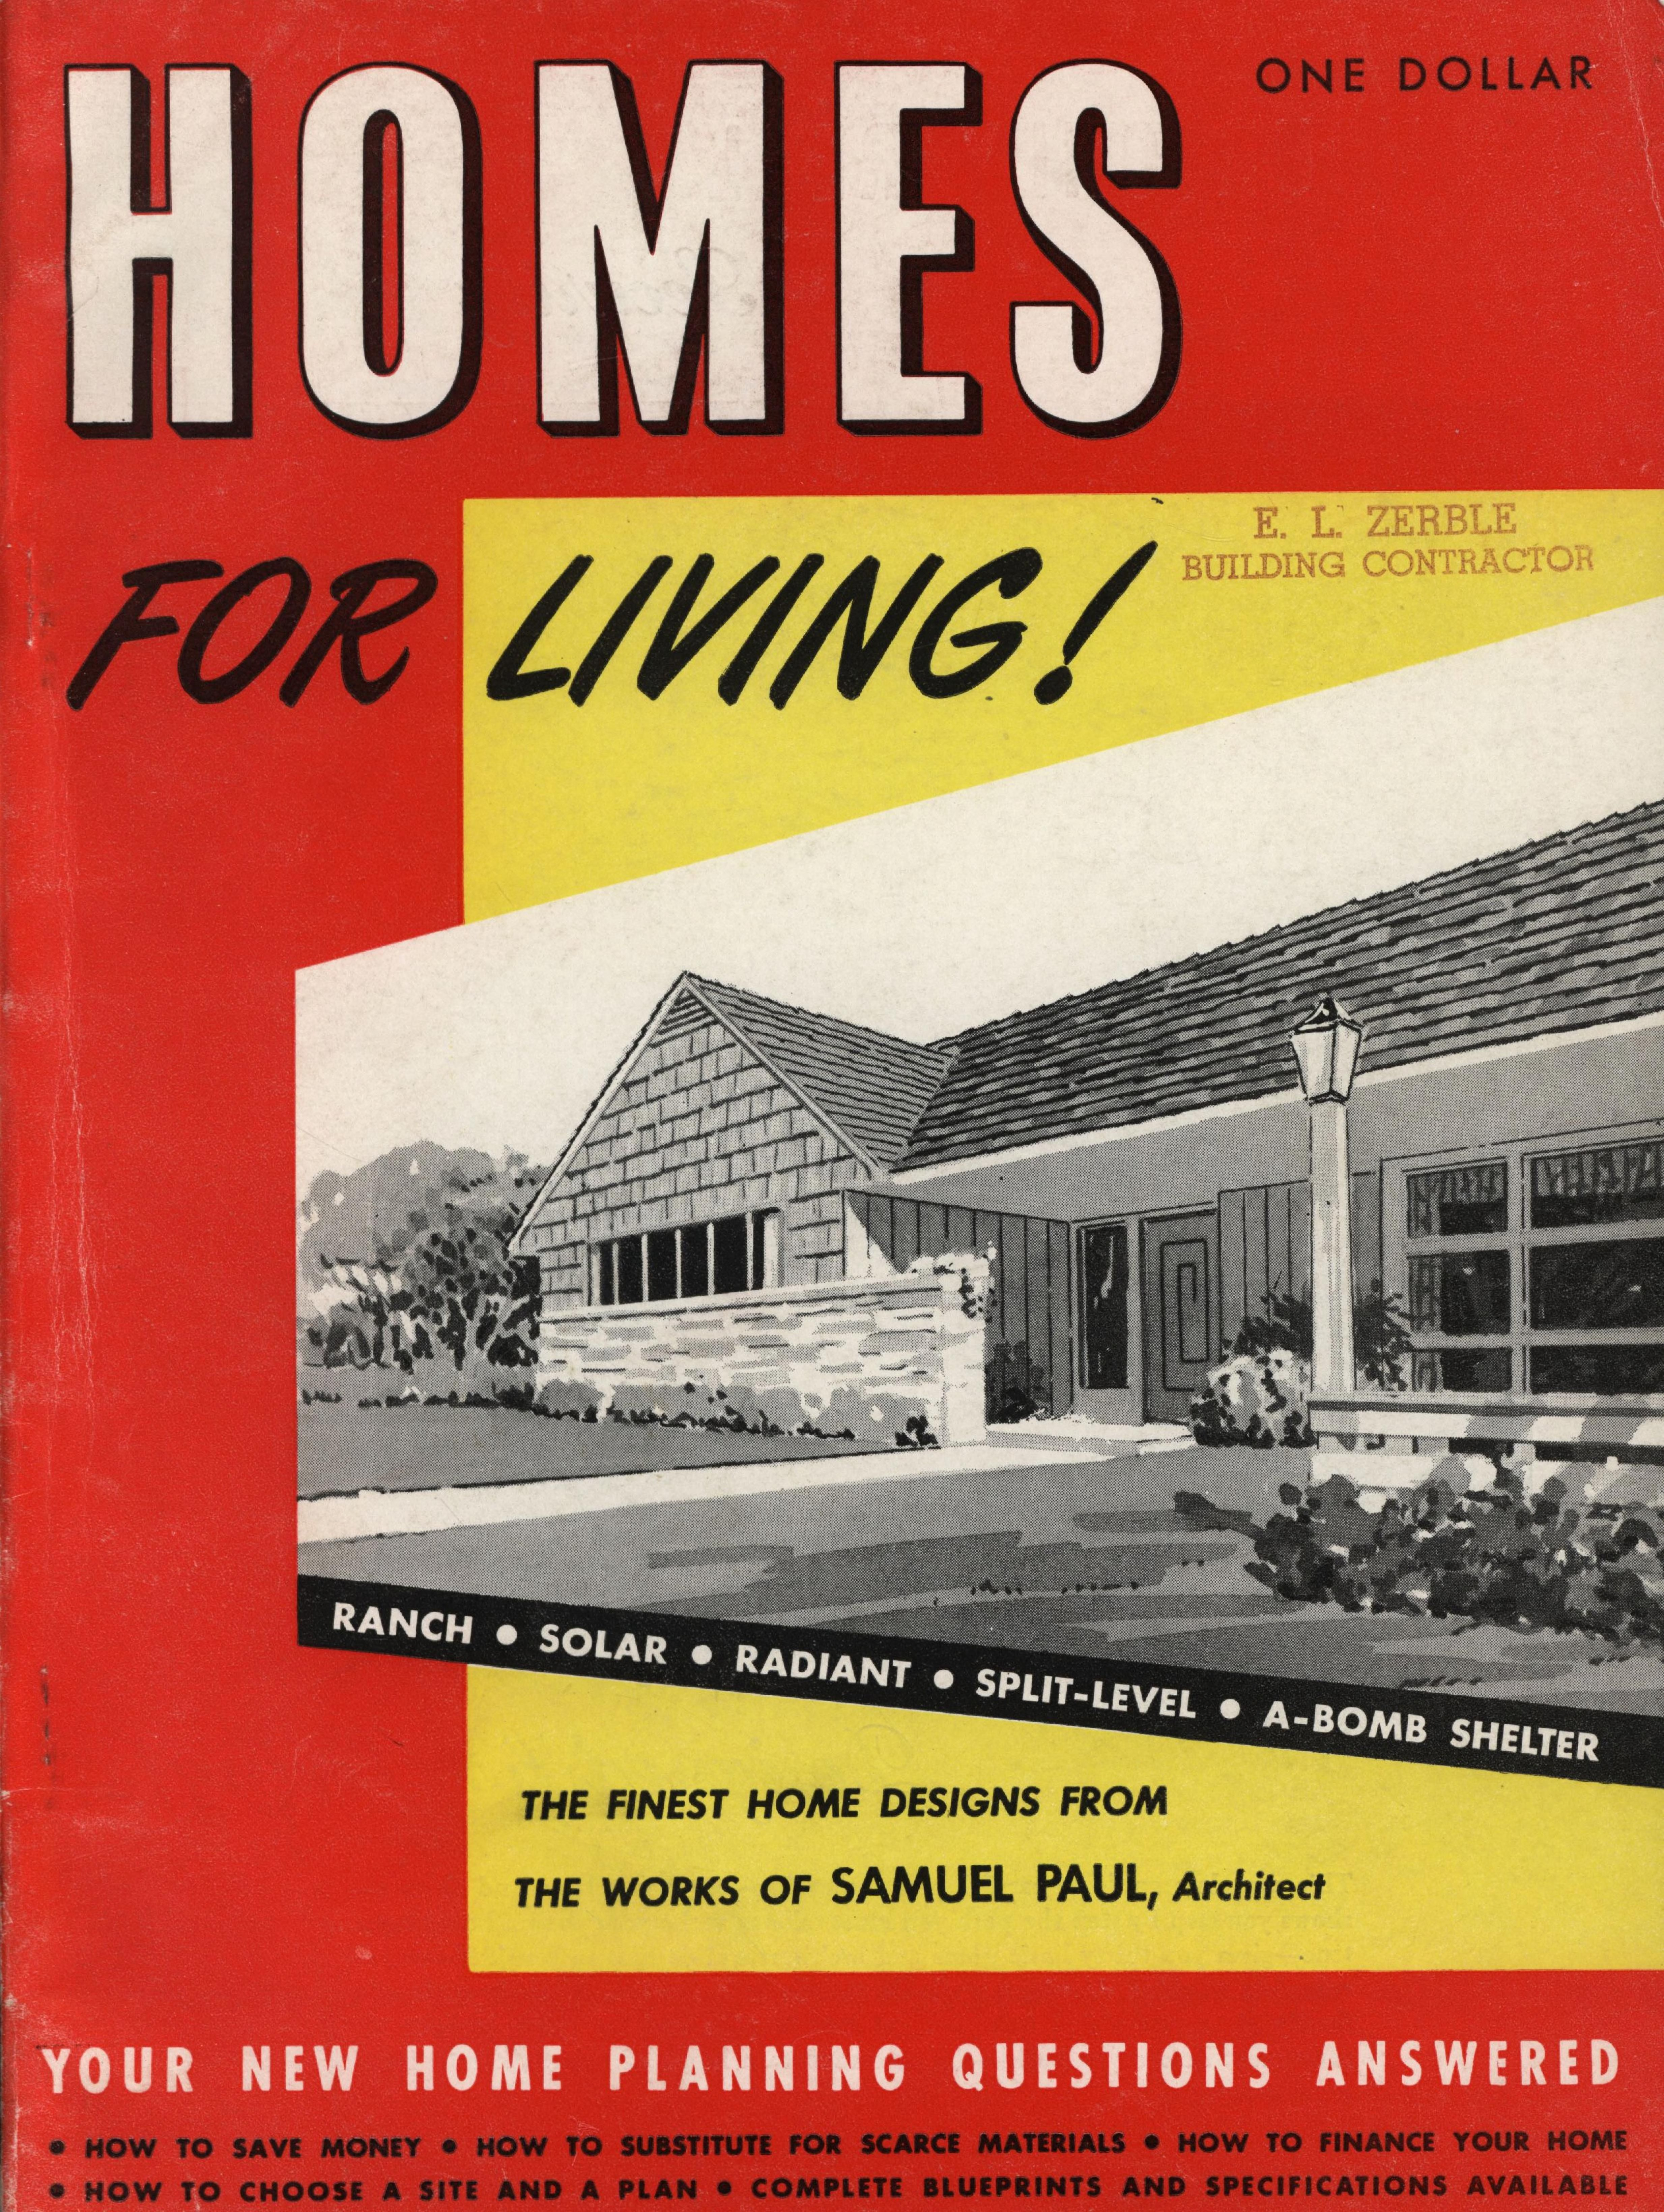 Homes for living: the finest home designs from the works ...